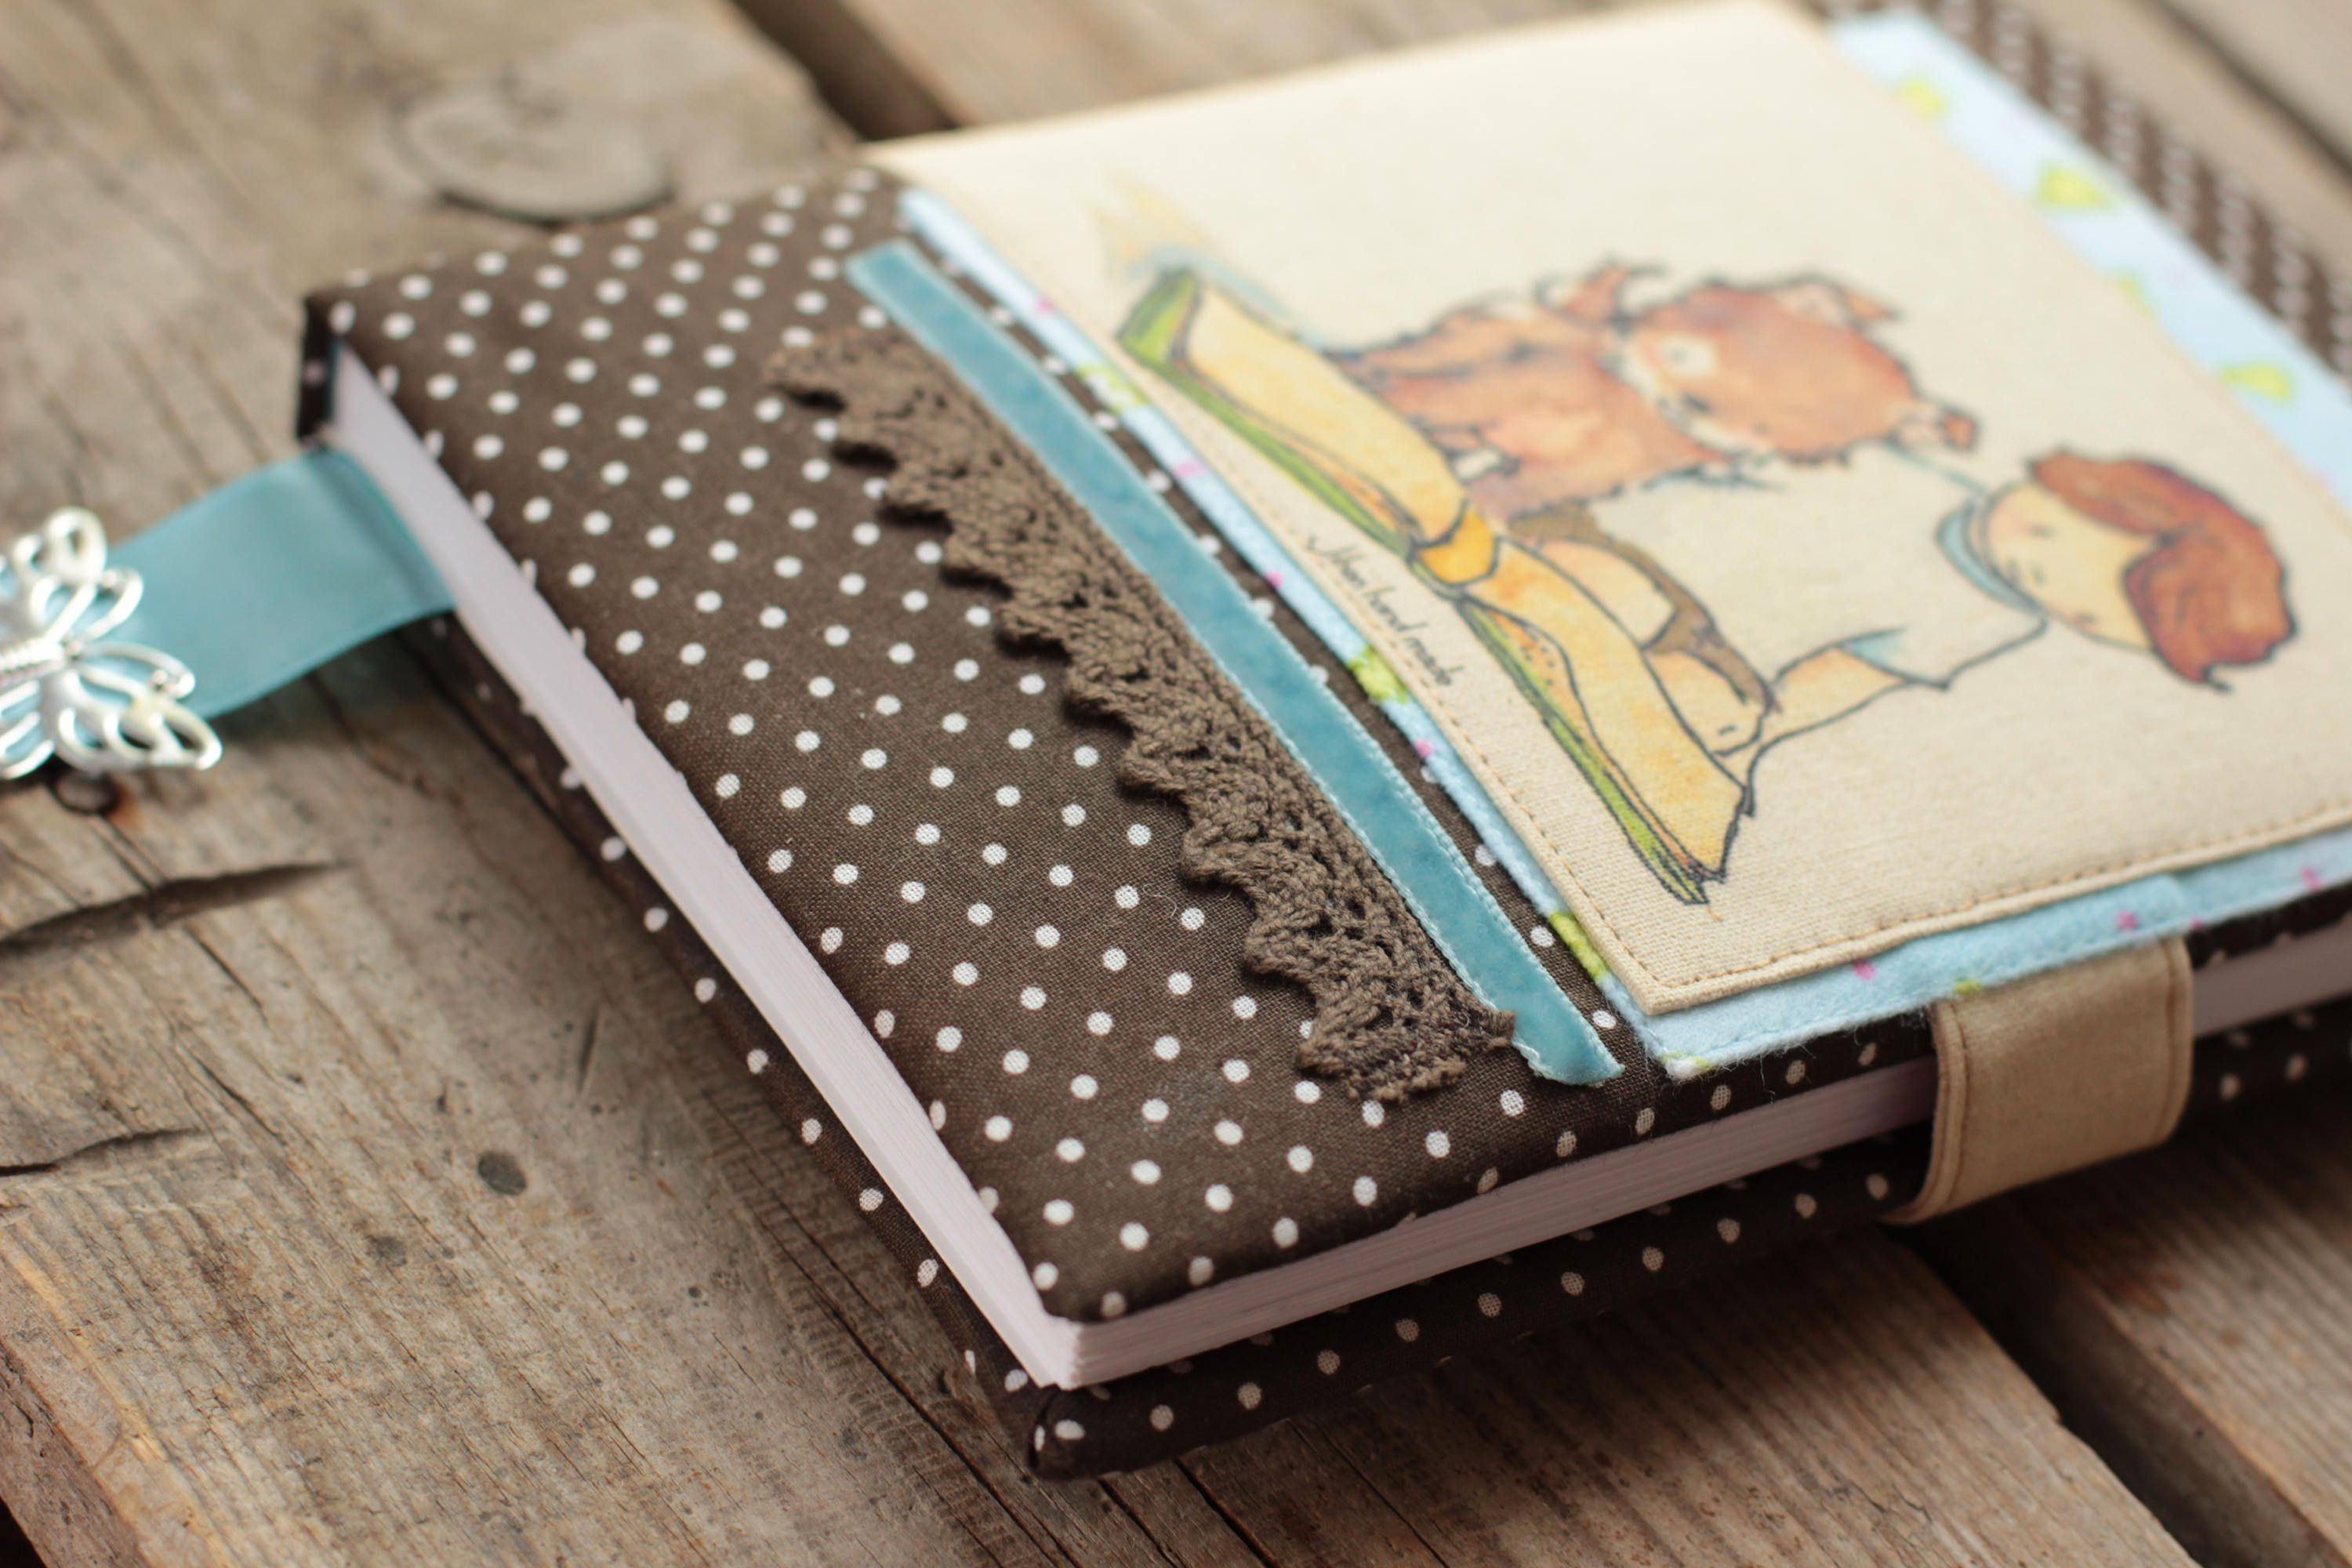 Fabric Book Cover Ideas ~ Notebook ideas cover cotton anniversary gifts paint envelope